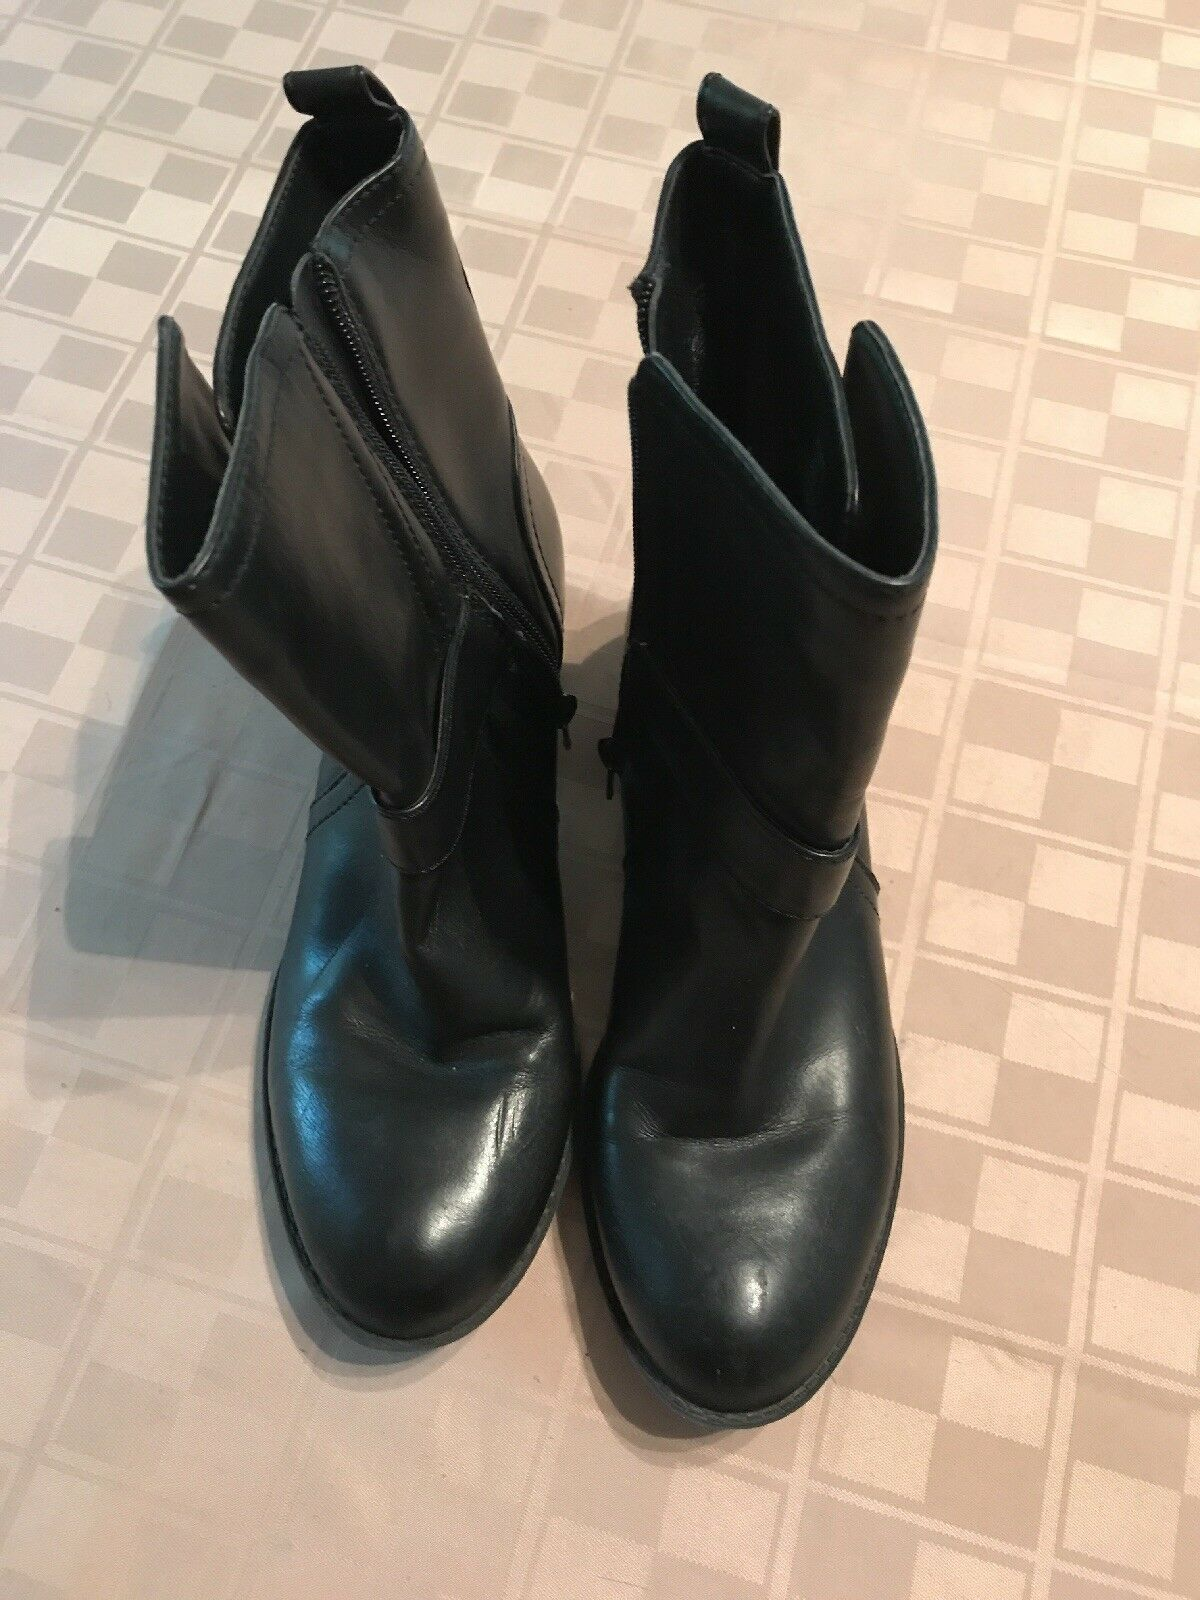 Just Fab Boots Robbie women's U.S Size 7 (euro 37.5) black ankle boot